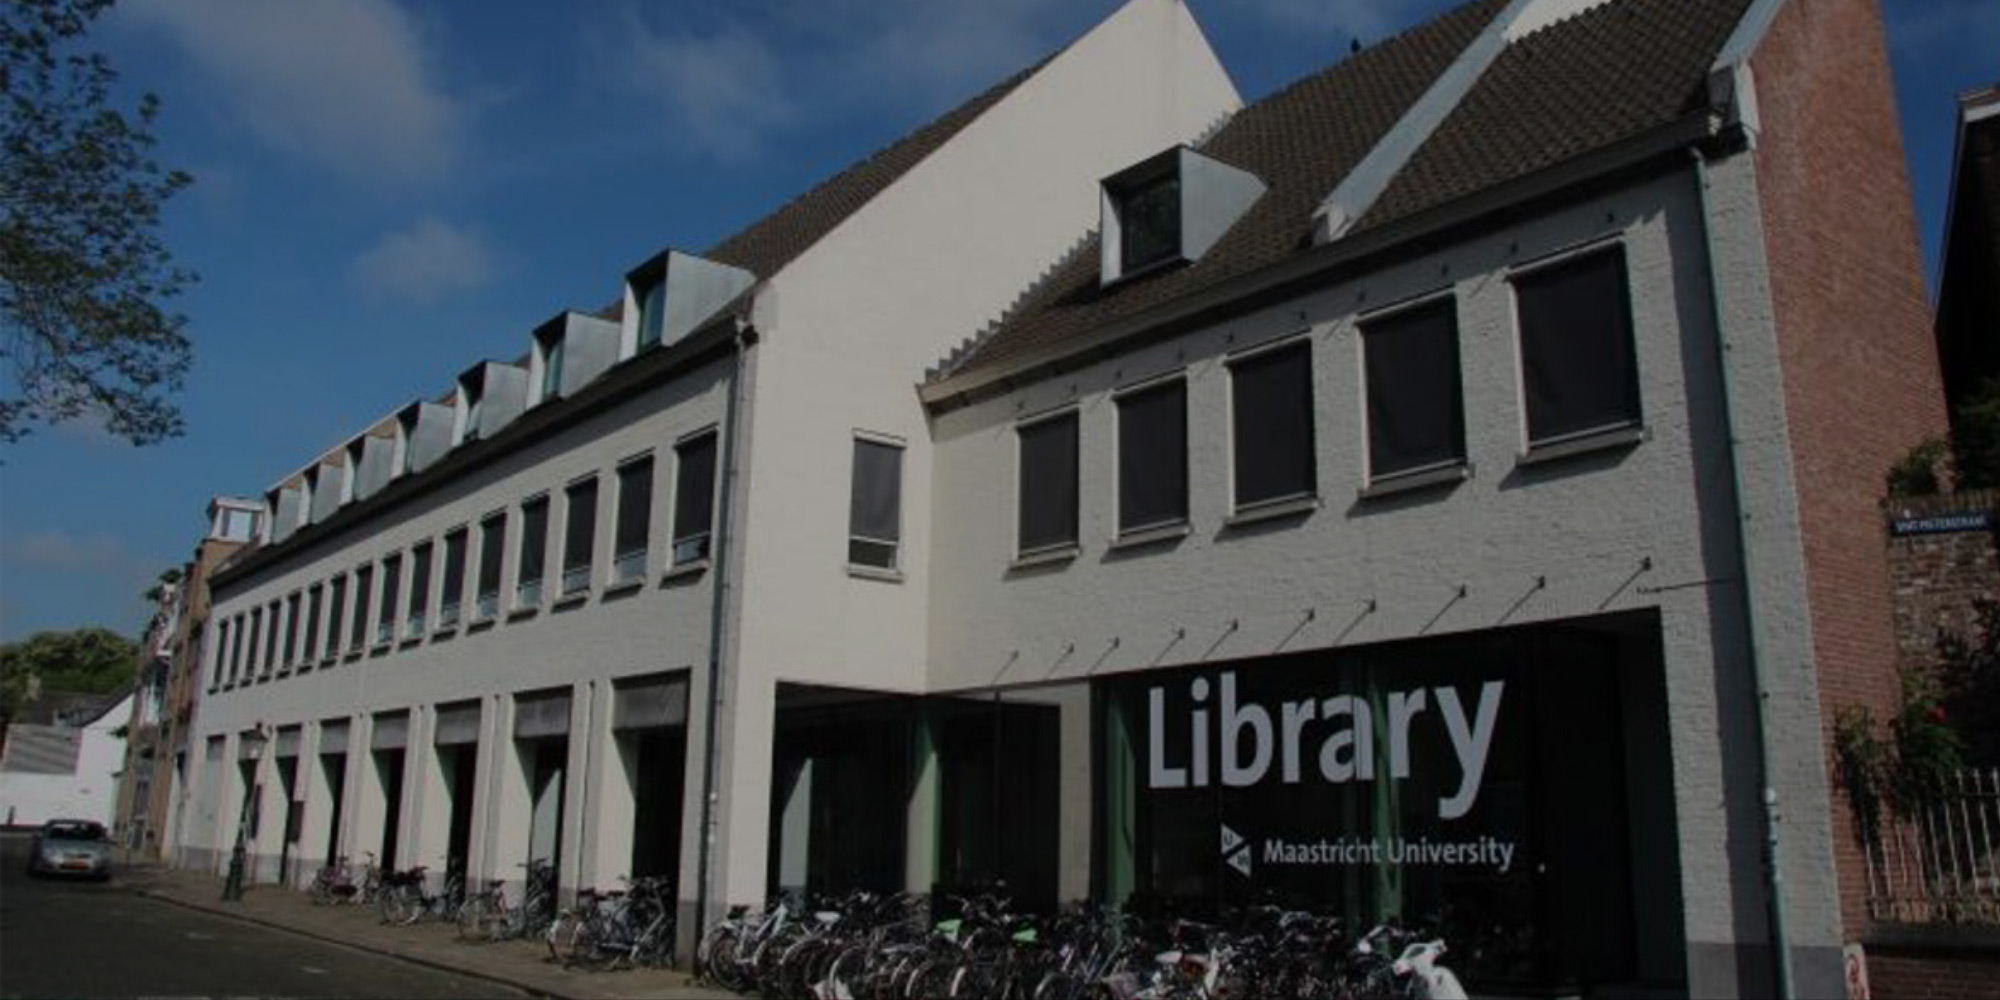 Um Library Faq On Covid 19 Effects Maastricht University Library